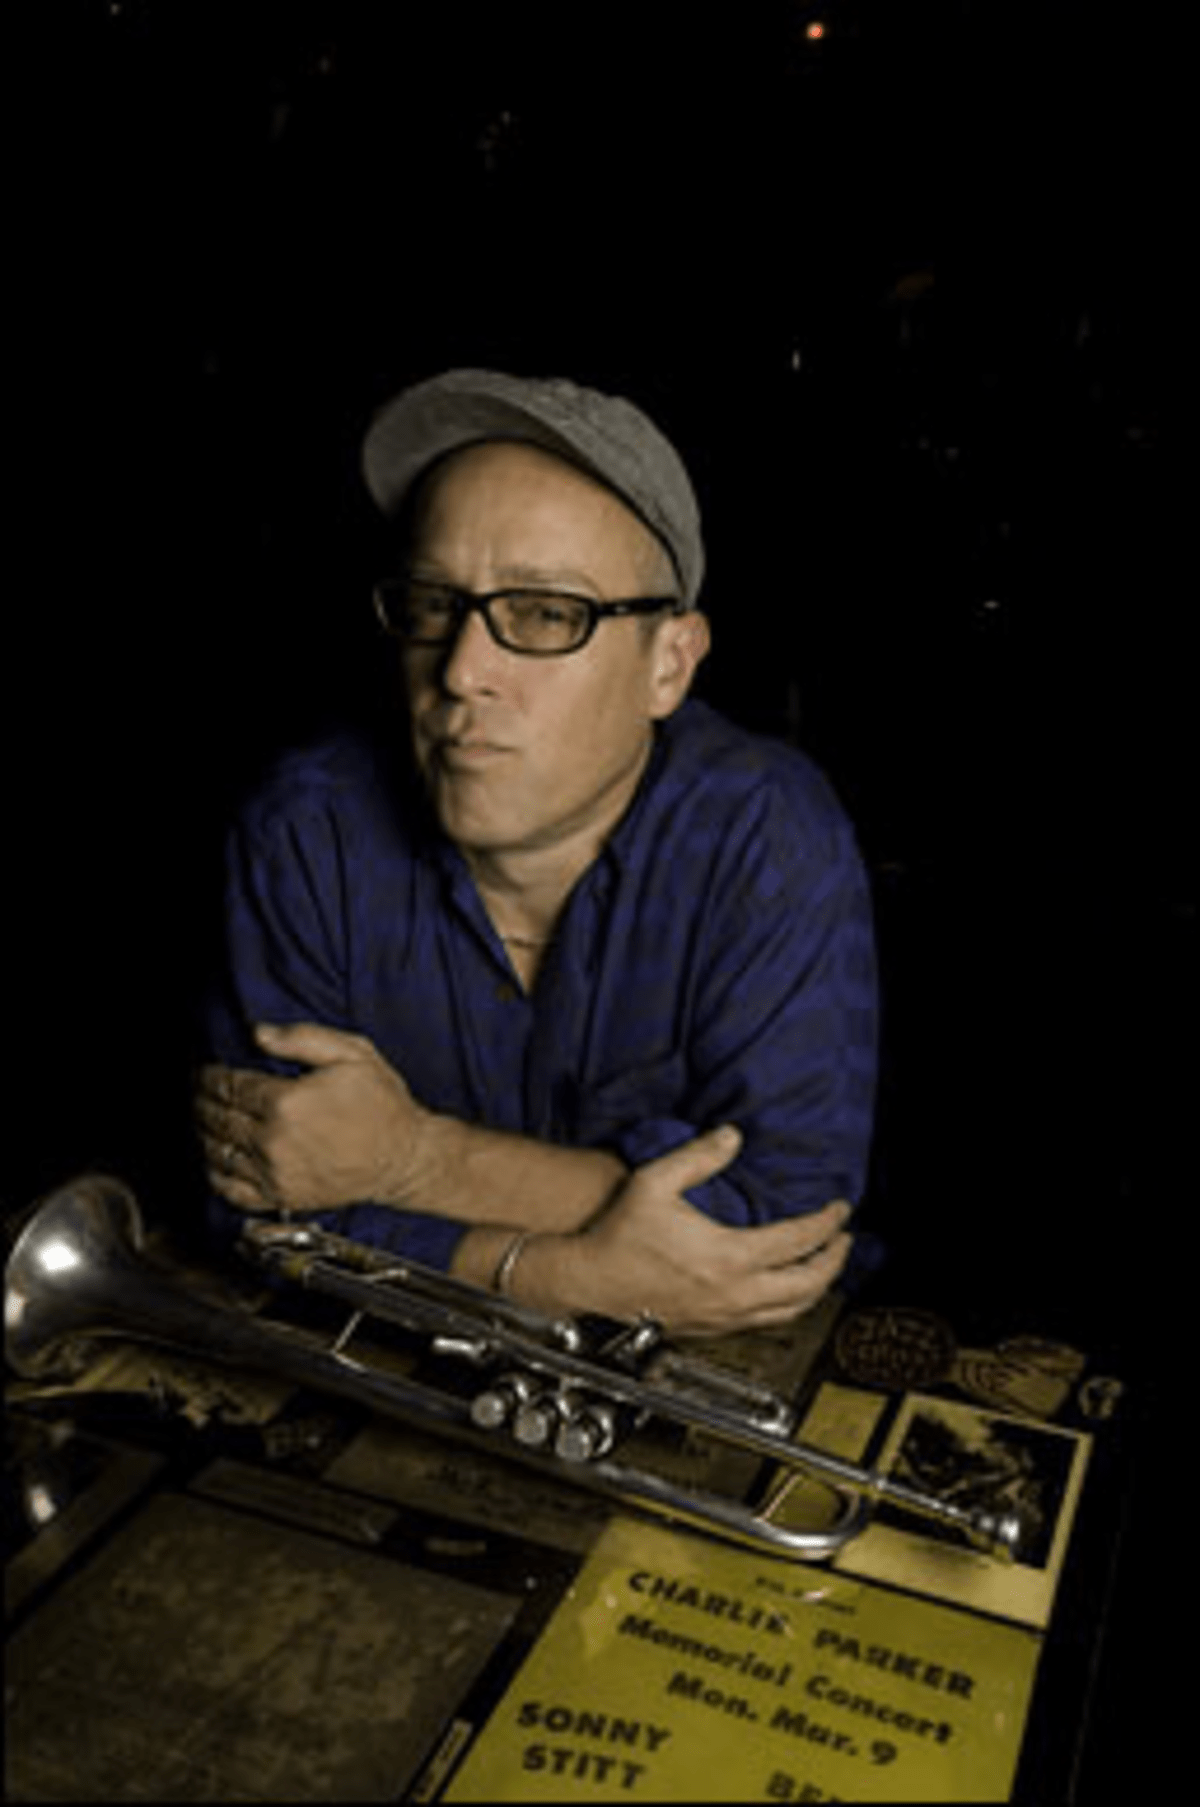 Blasts From the Past: Douglas finds inspiration in historical jazz.